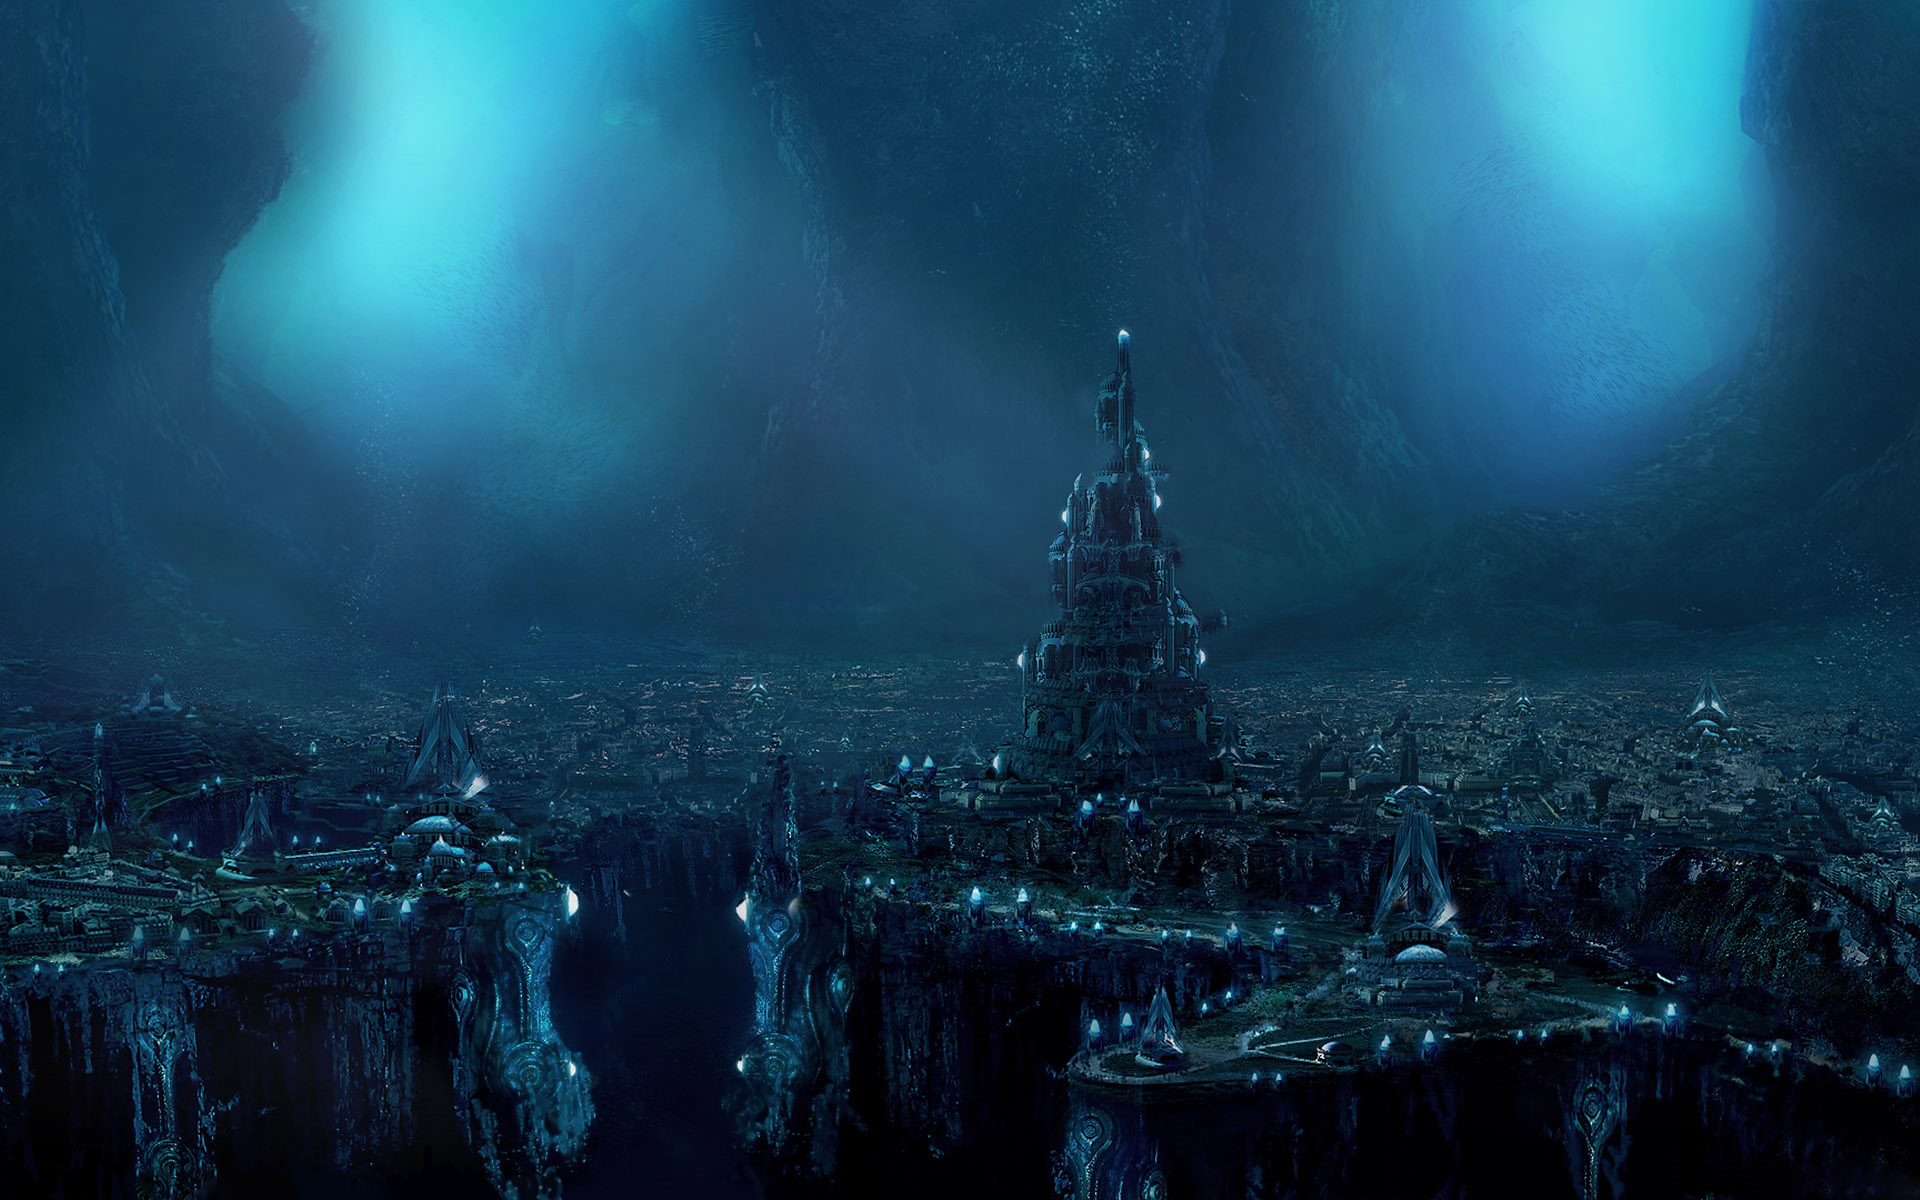 Sci Fi - City  - Dark - Atlantis - Landscape - Fantasy Wallpaper